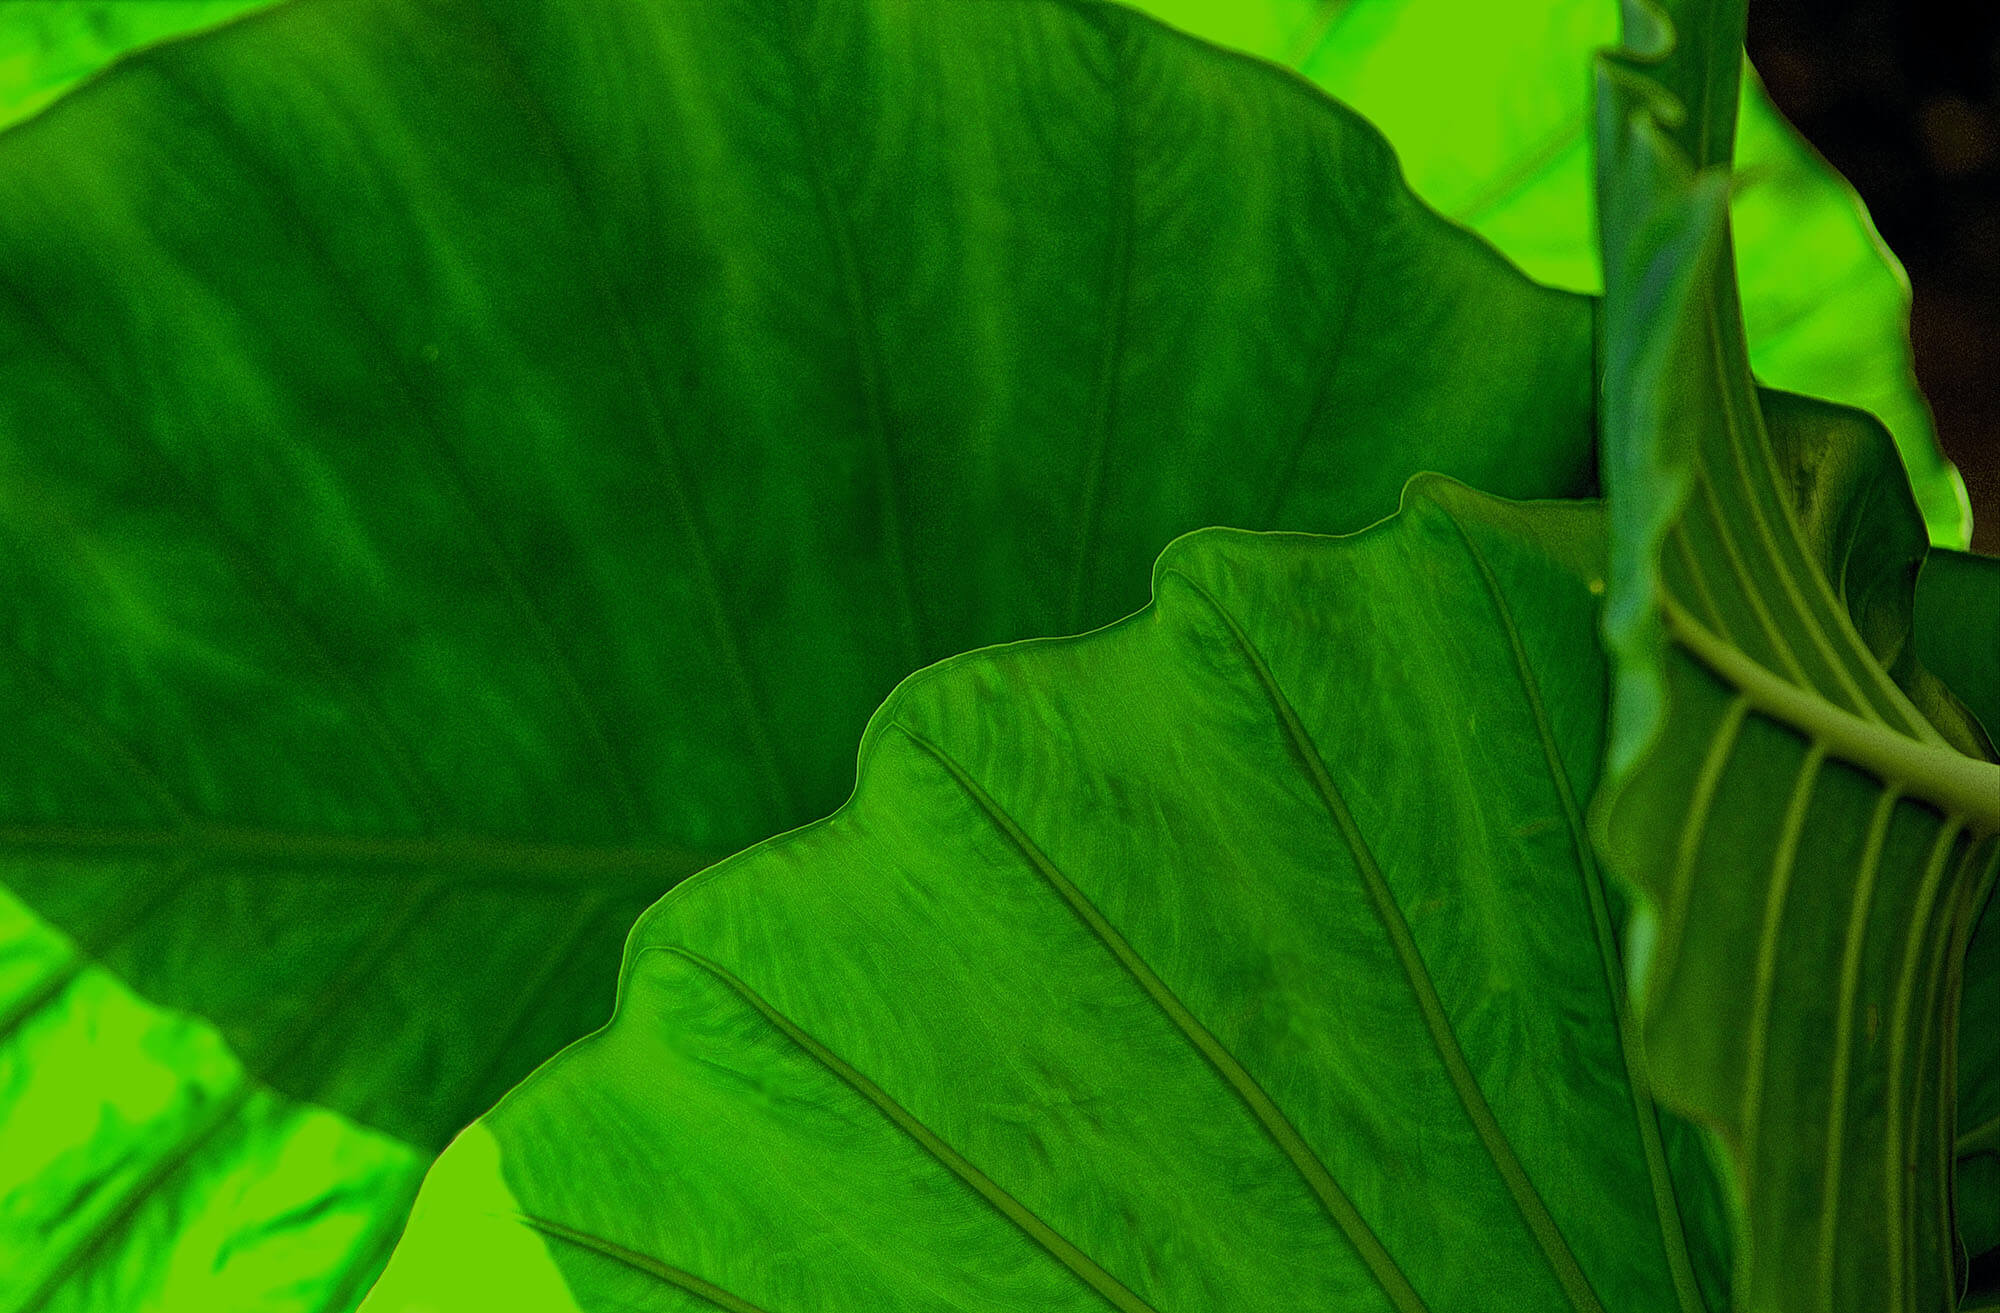 Why Can the Human Eye See More Shades of Green?